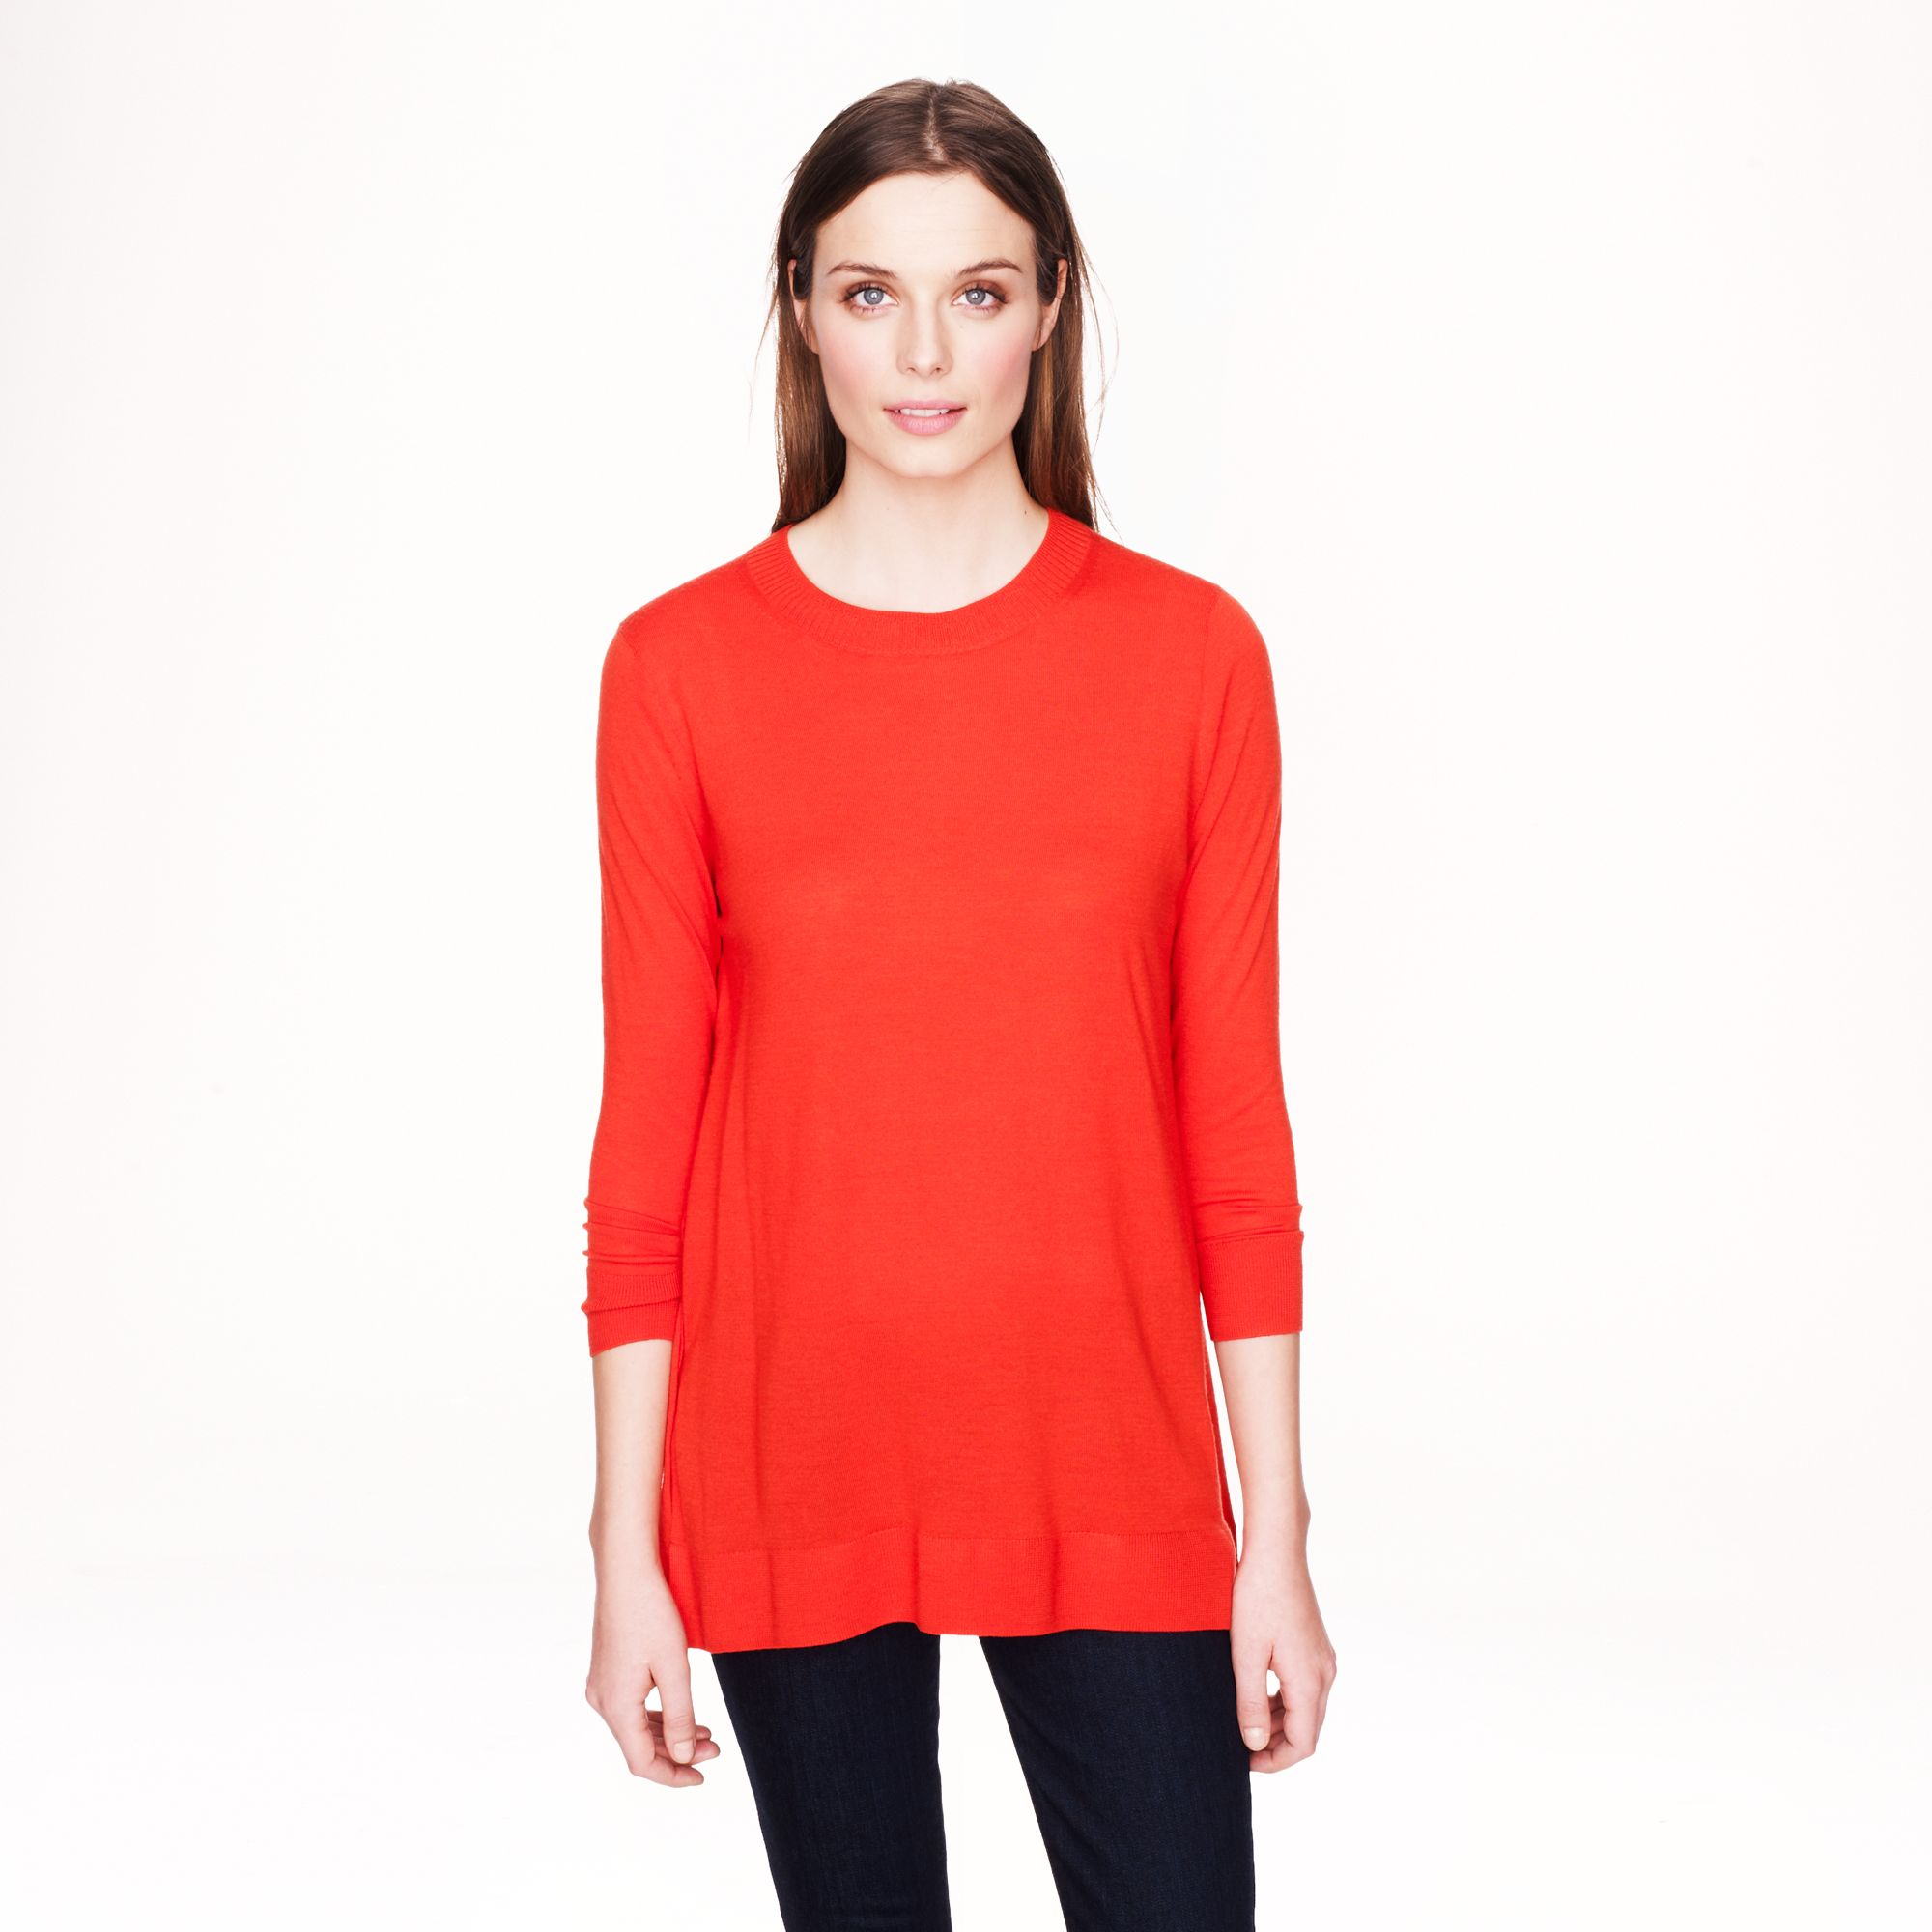 J Crew Factory Lightweight Tunic Sweater Review - Cardigan With ...